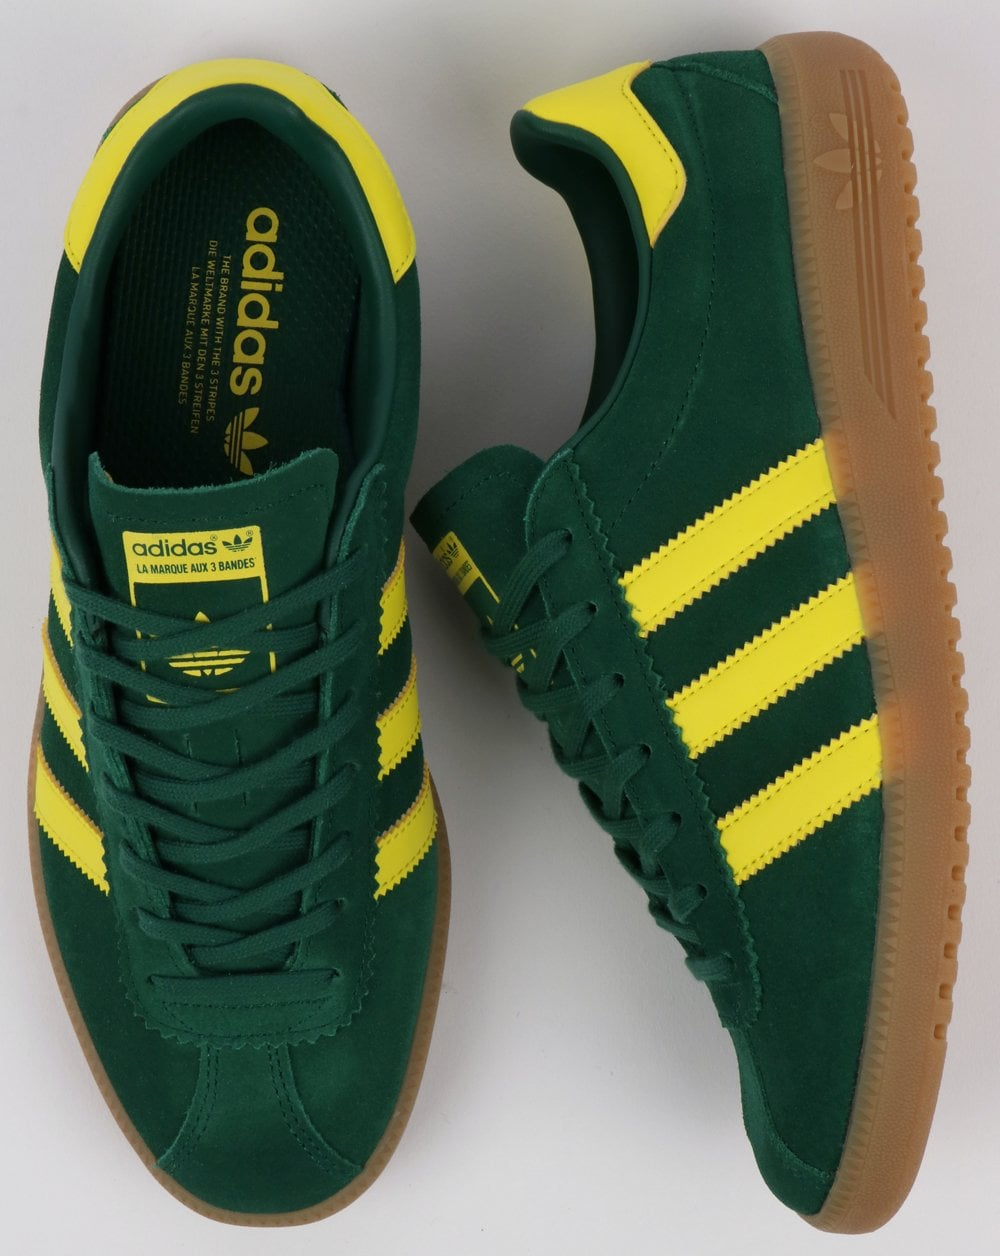 a92dbf43c24 Adidas Bermuda Trainers Green Yellow